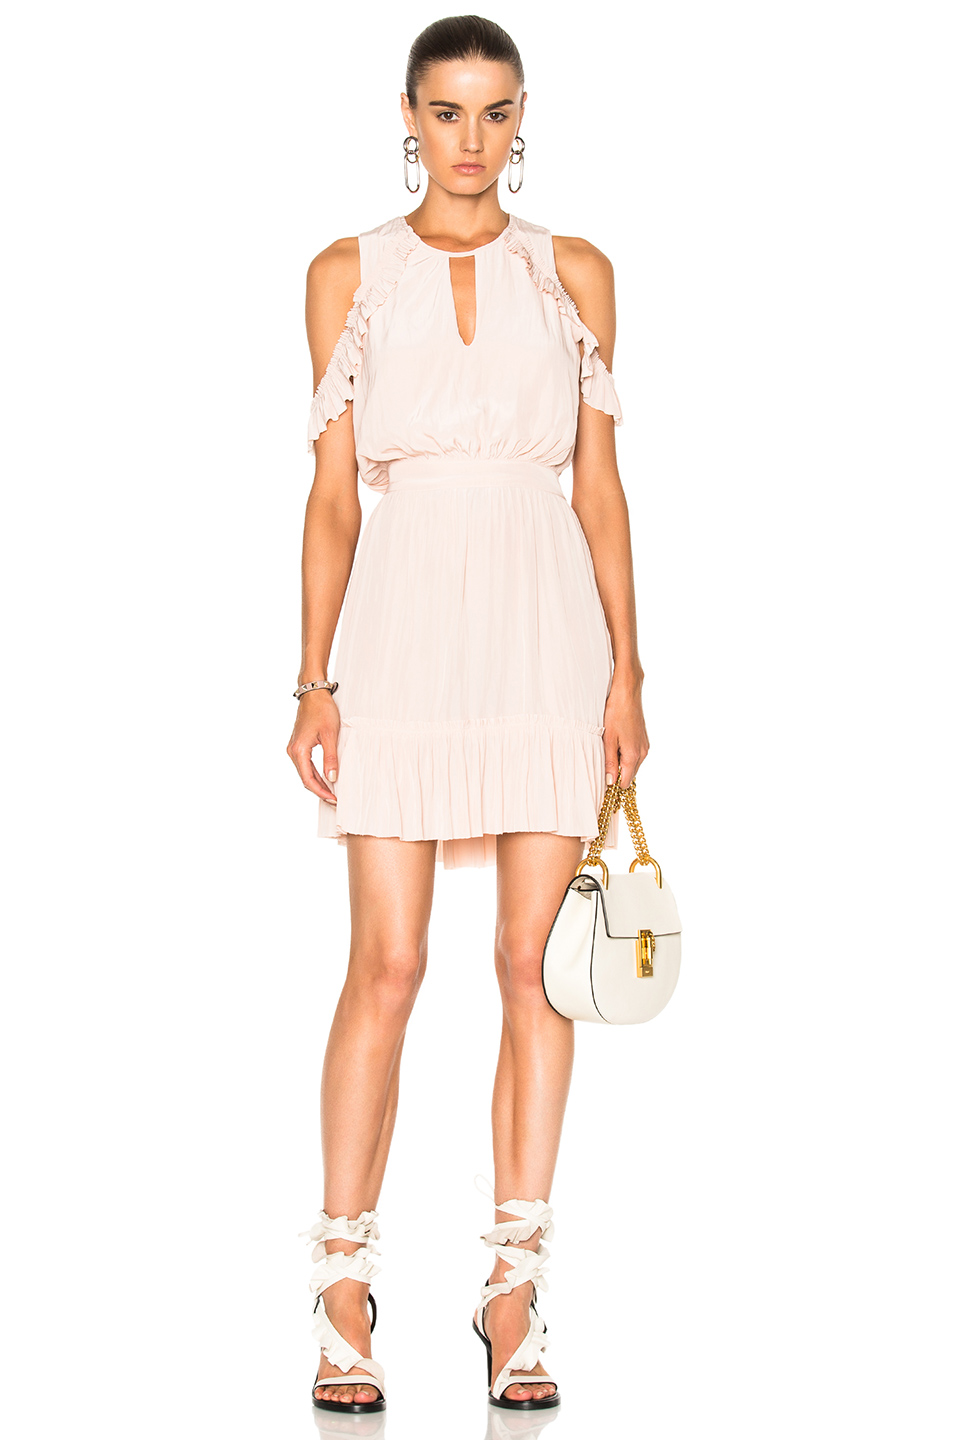 Calvin Rucker for FWRD Hot in Here Dress in Pink